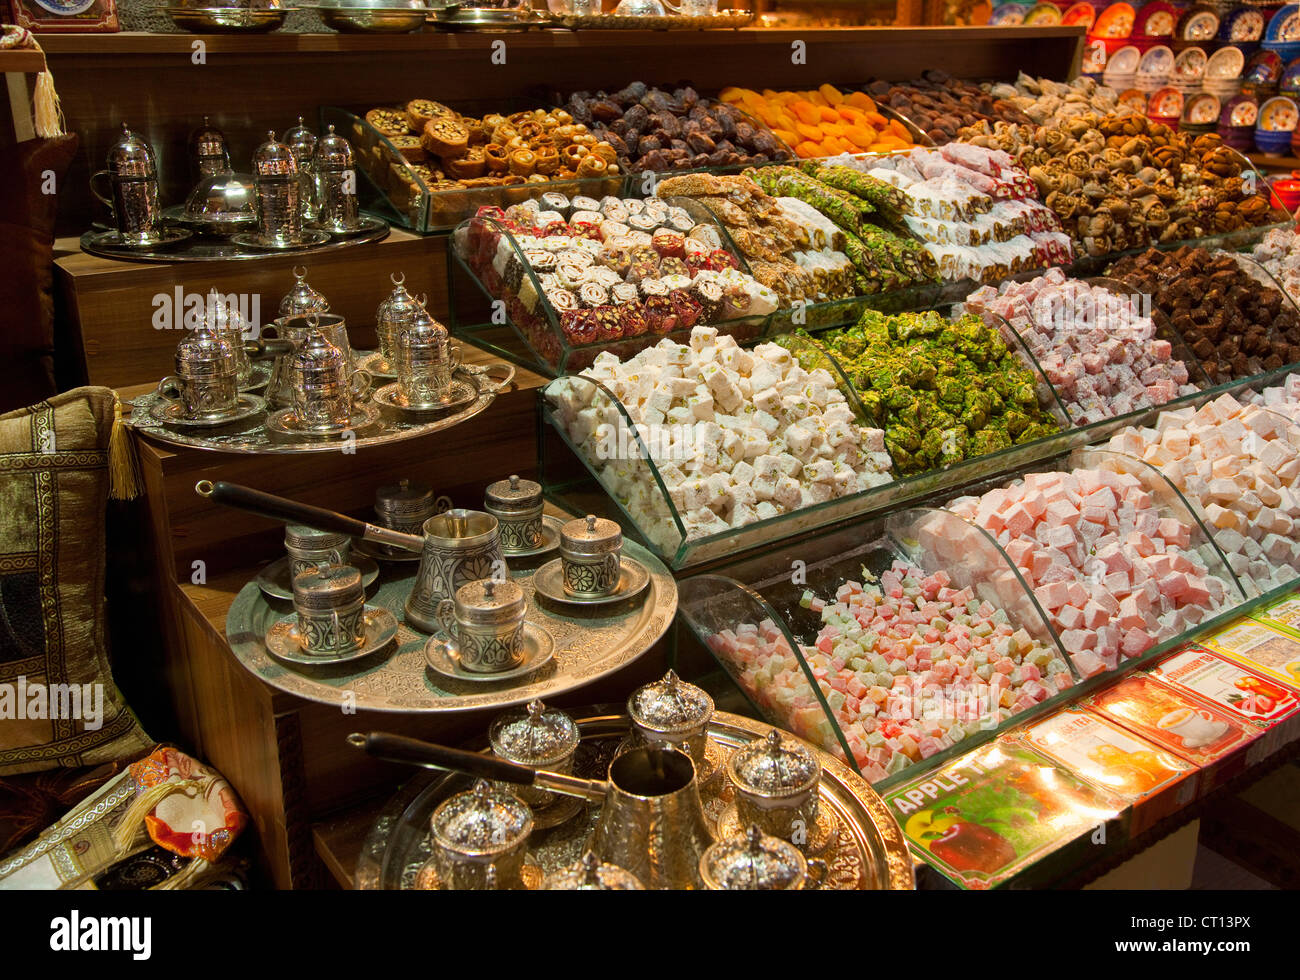 Candies and tea sets for sale - Stock Image